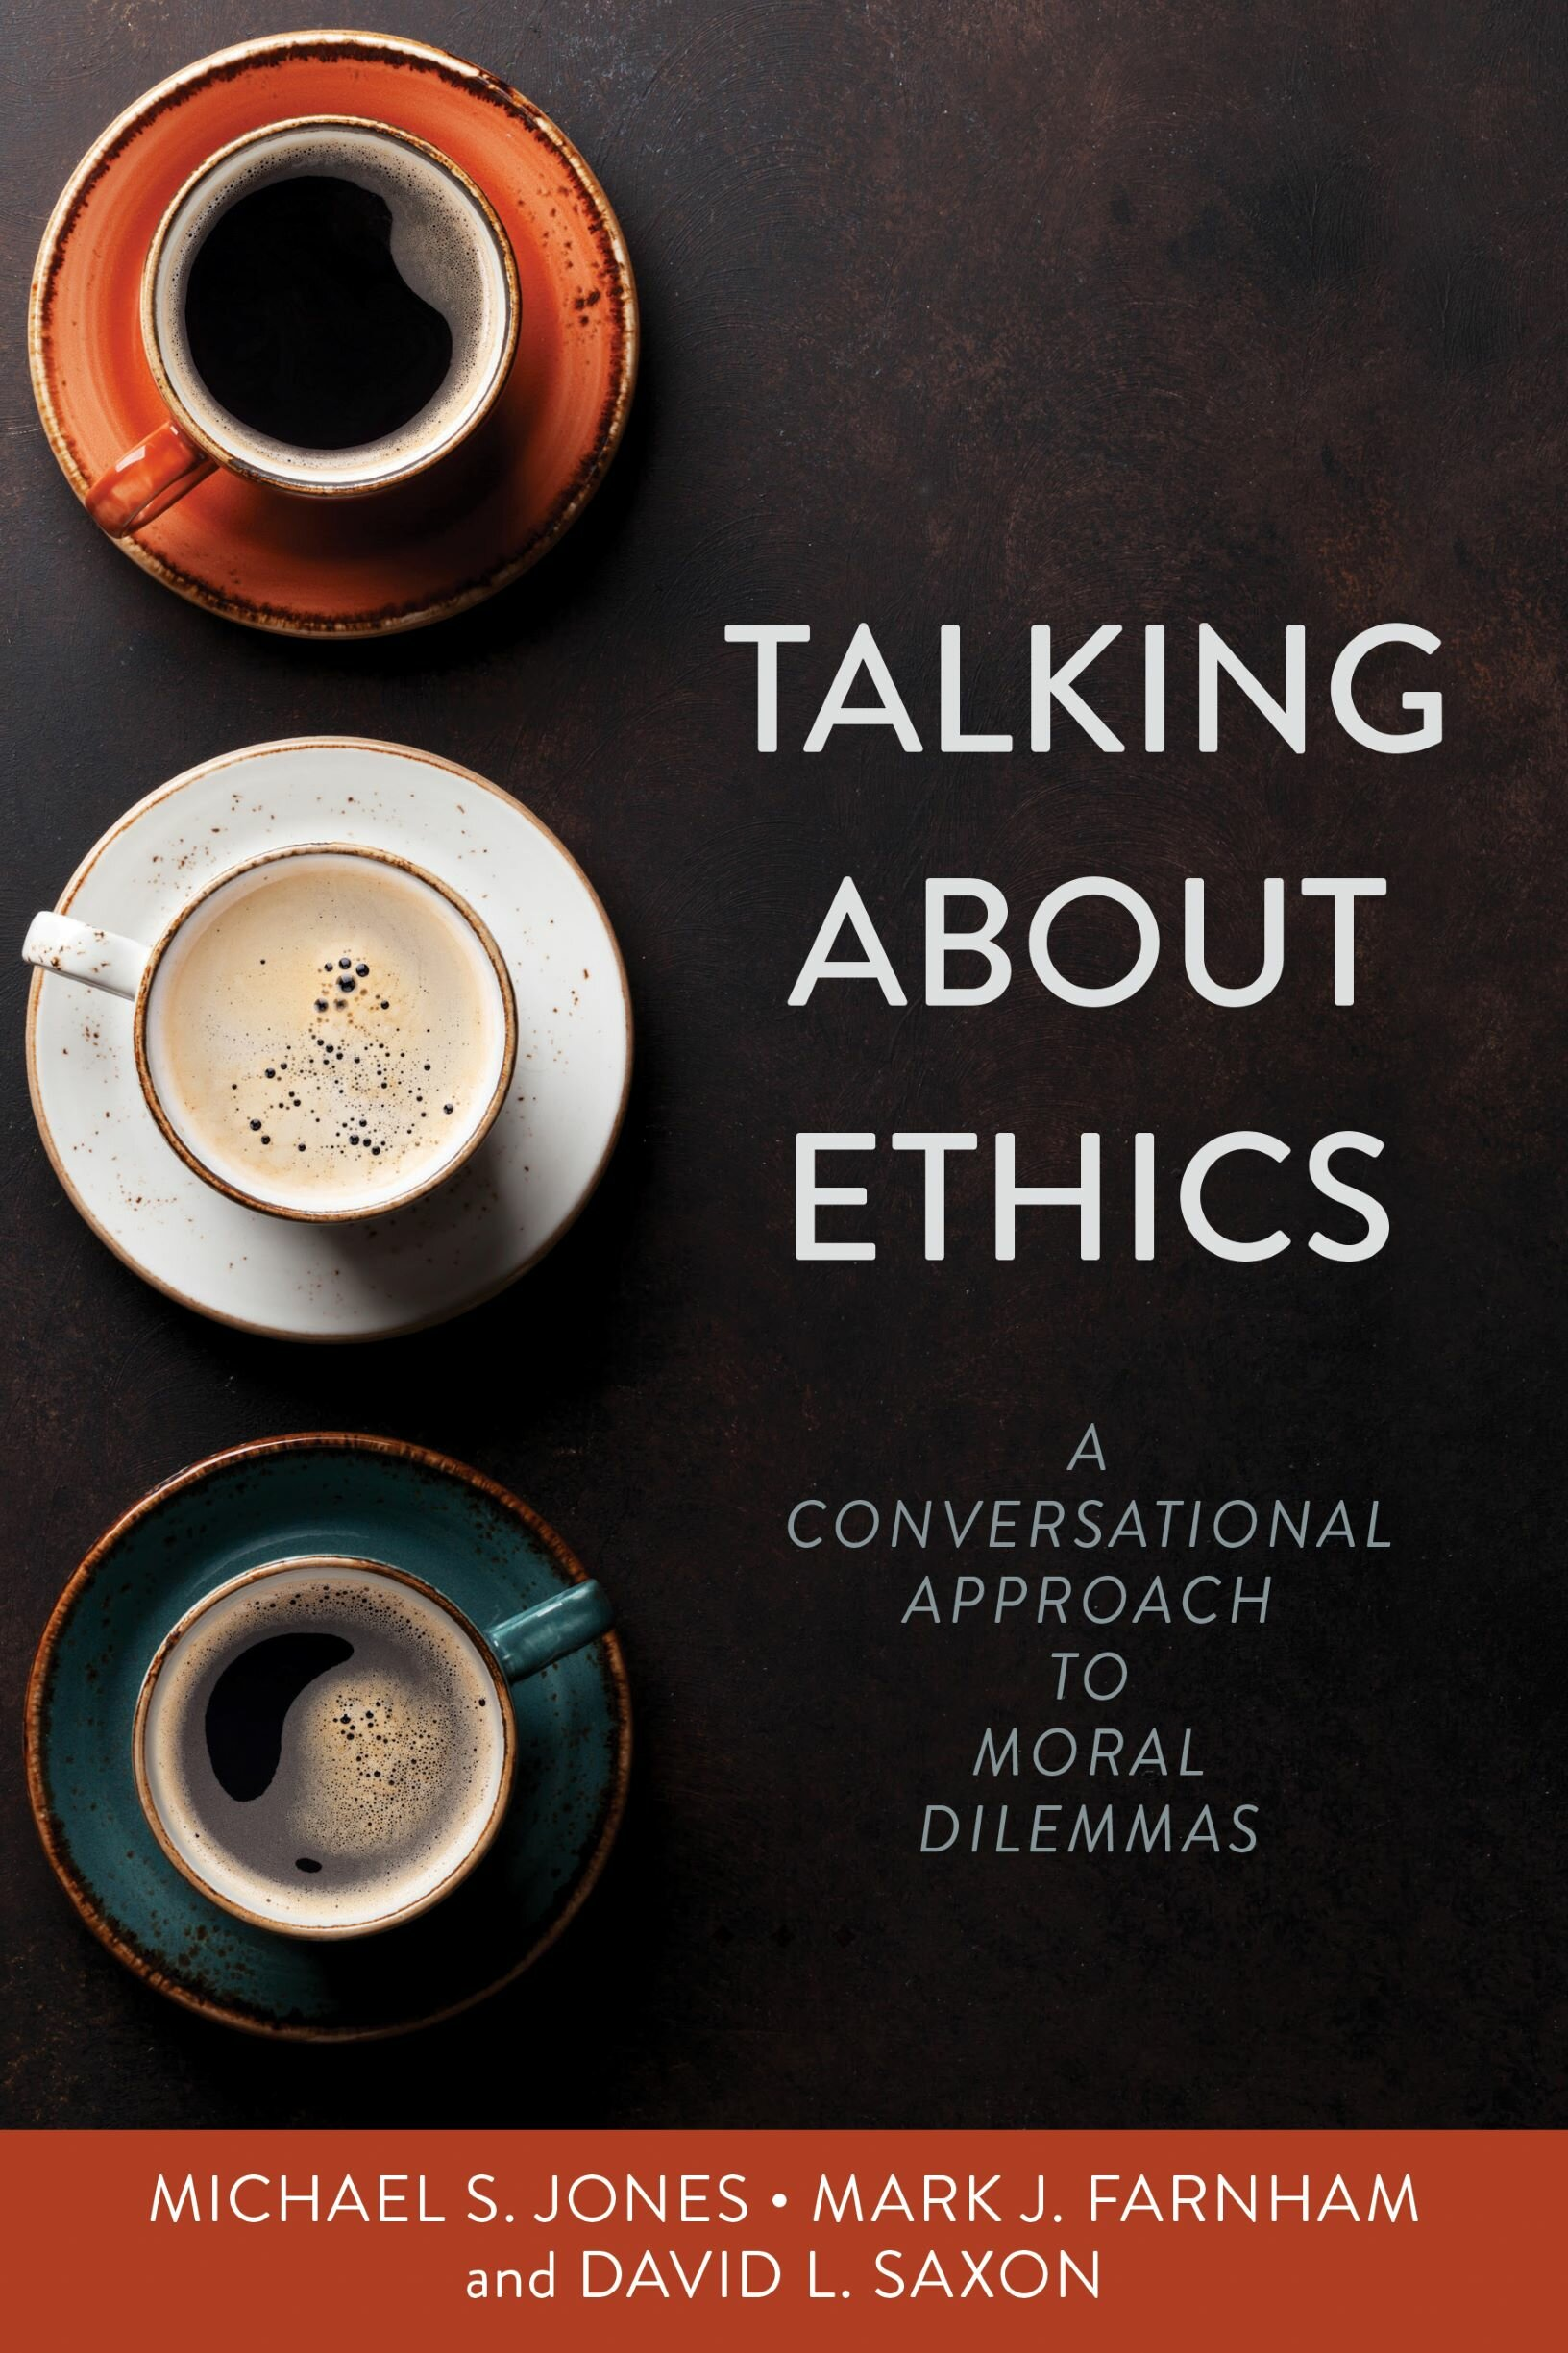 Talking about Ethics: A Conversational Approach to Moral Dilemmas